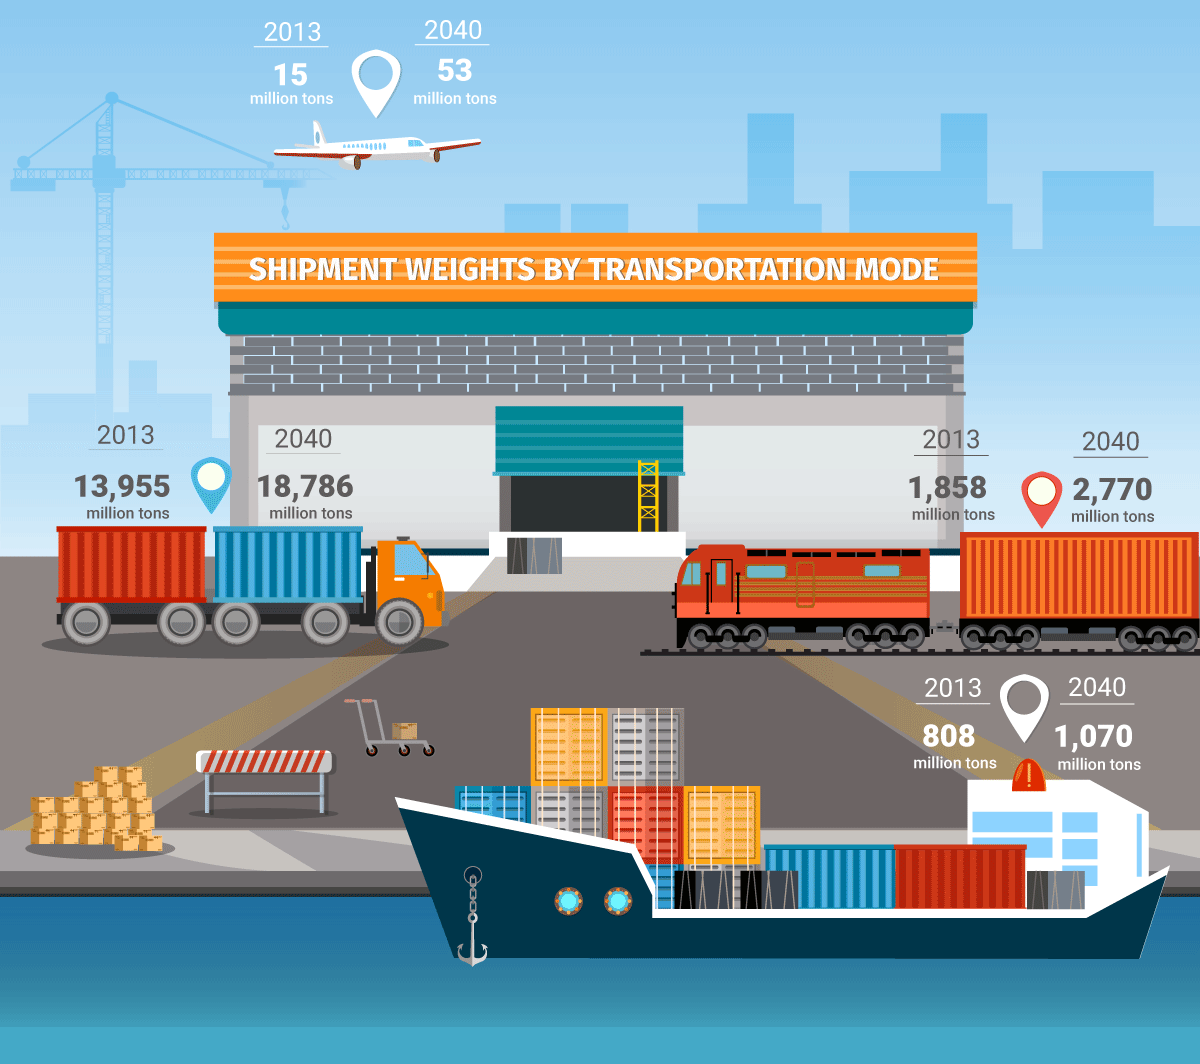 warehouse-location-info-by-shipment-weights-3001.png